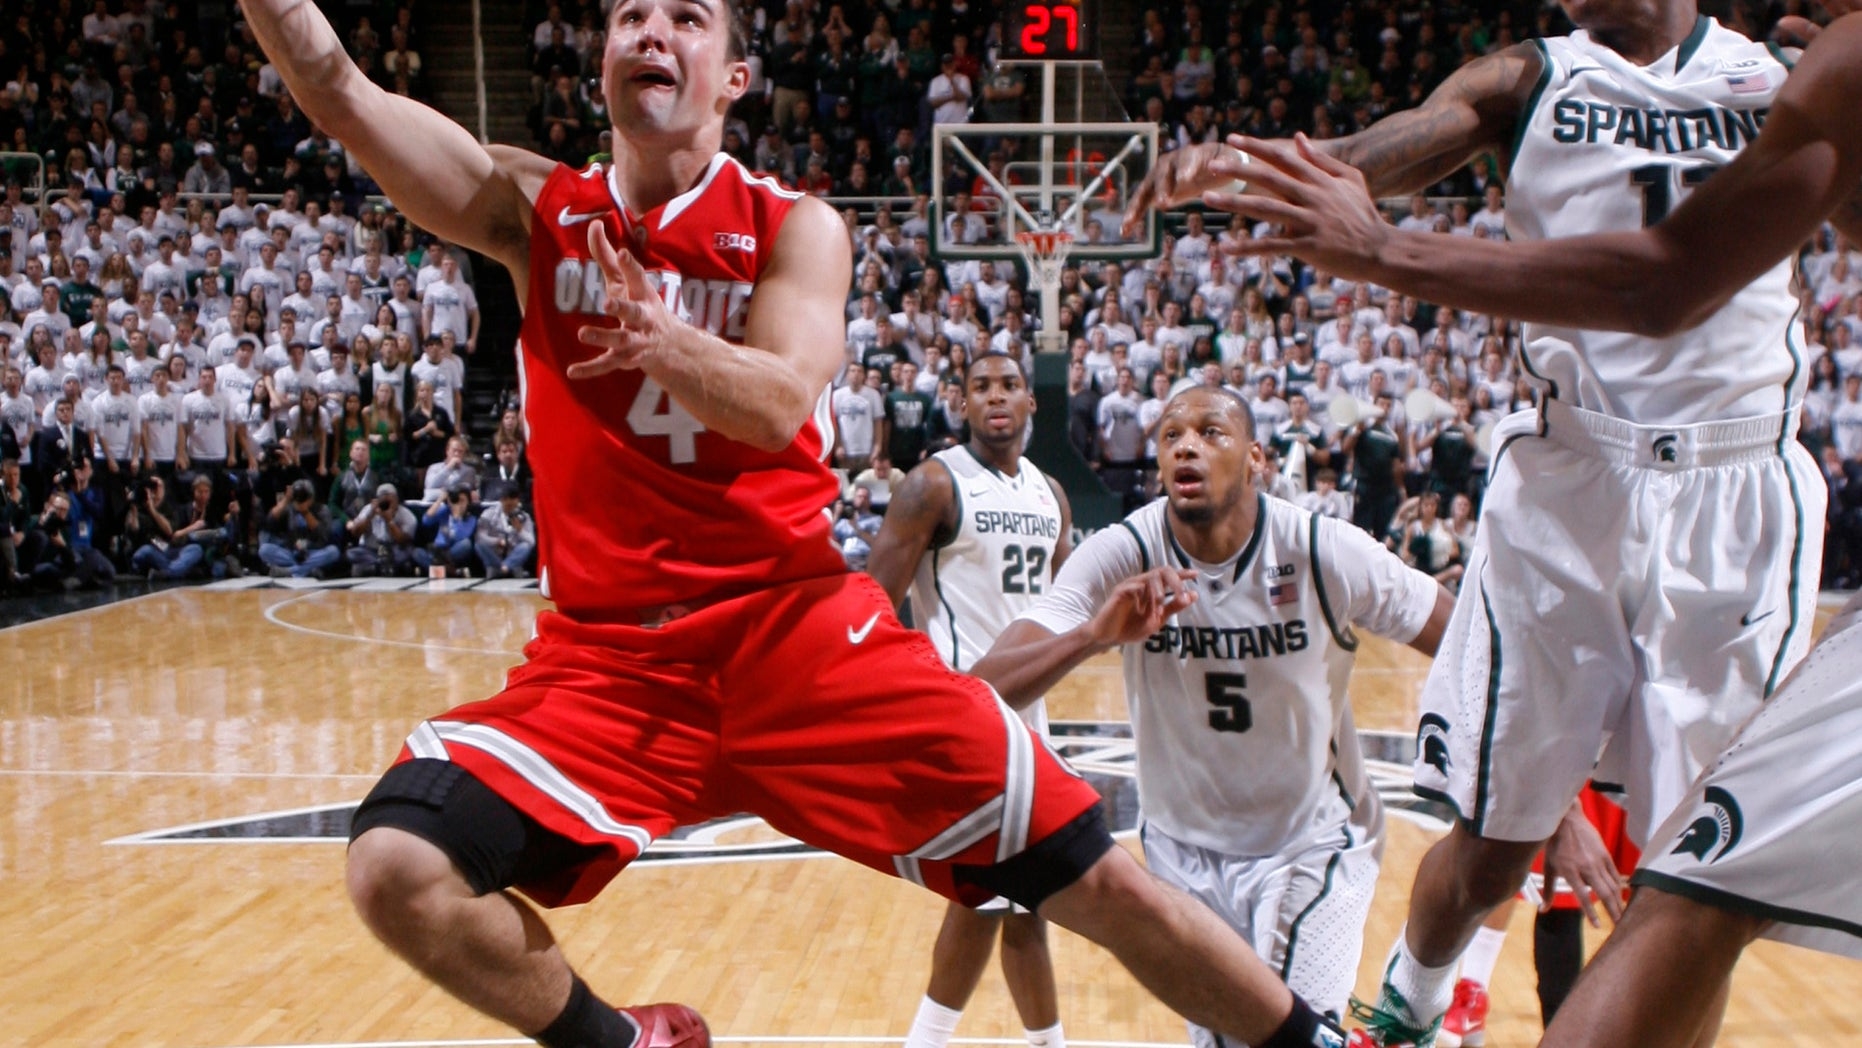 Ohio State's Aaron Craft (4) lays the ball up against Michigan State's Keith Appling, right, during overtime of an NCAA college basketball game, Tuesday, Jan. 7, 2014, in East Lansing, Mich. Michigan State won 72-68 in overtime. (AP Photo/Al Goldis)